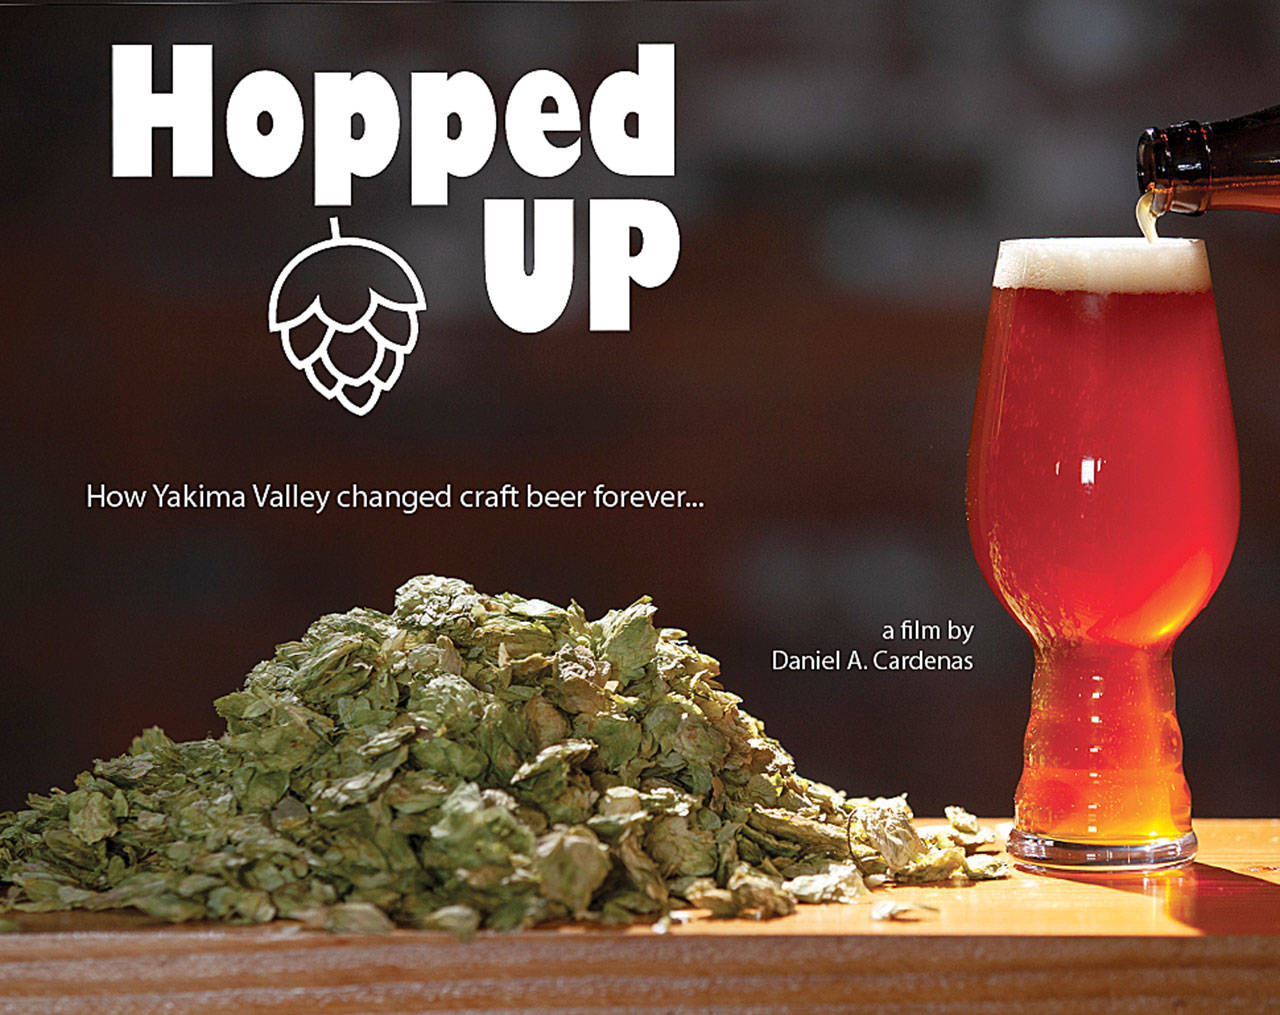 """The new documentary """"Hopped Up"""" tells the story of hop breeders in Yakima Valley and how their innovation has changed the craft beer industry. (Bakerbuilt Works)"""